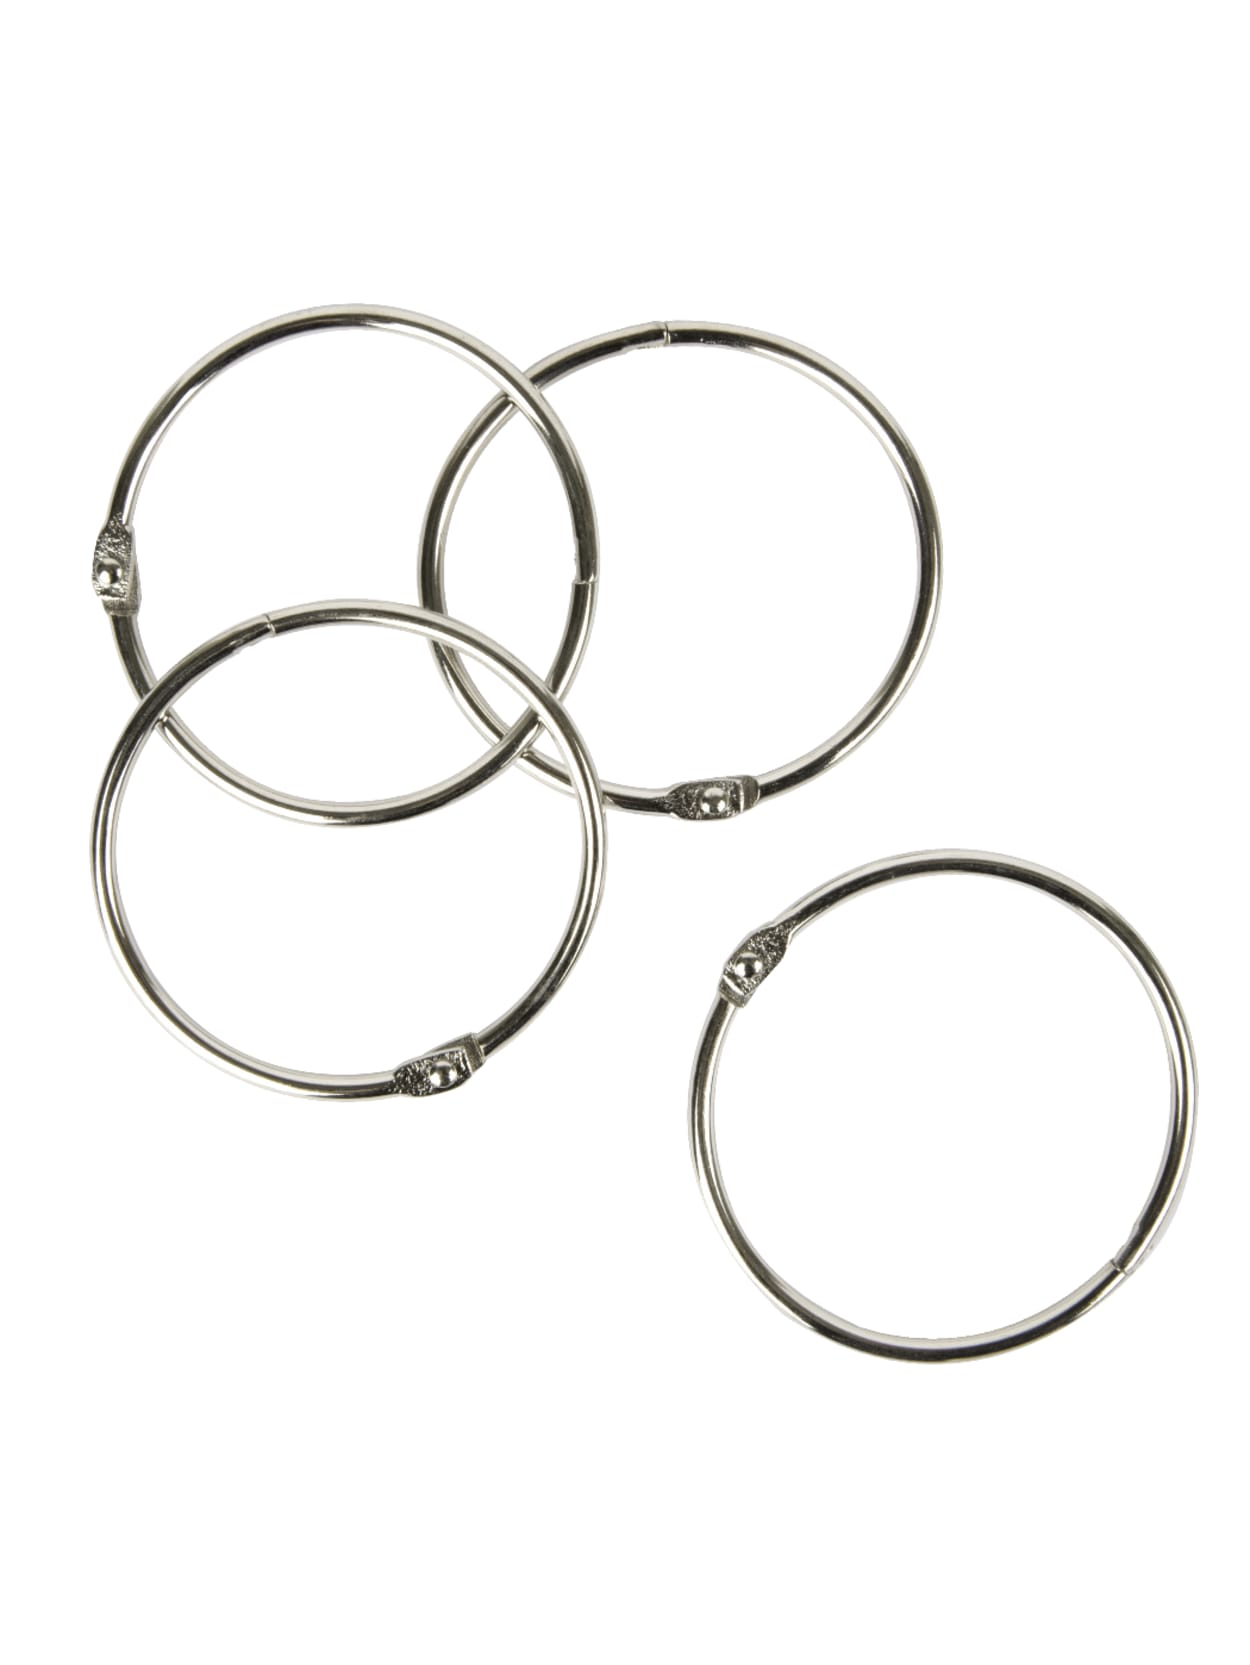 O Rings for Flashcards Loose Silver Loose Leaf Binder Rings for Paper by MoHern 22 Pcs Book Rings Metal Rings for Index Cards Binder Rings 2 Inch